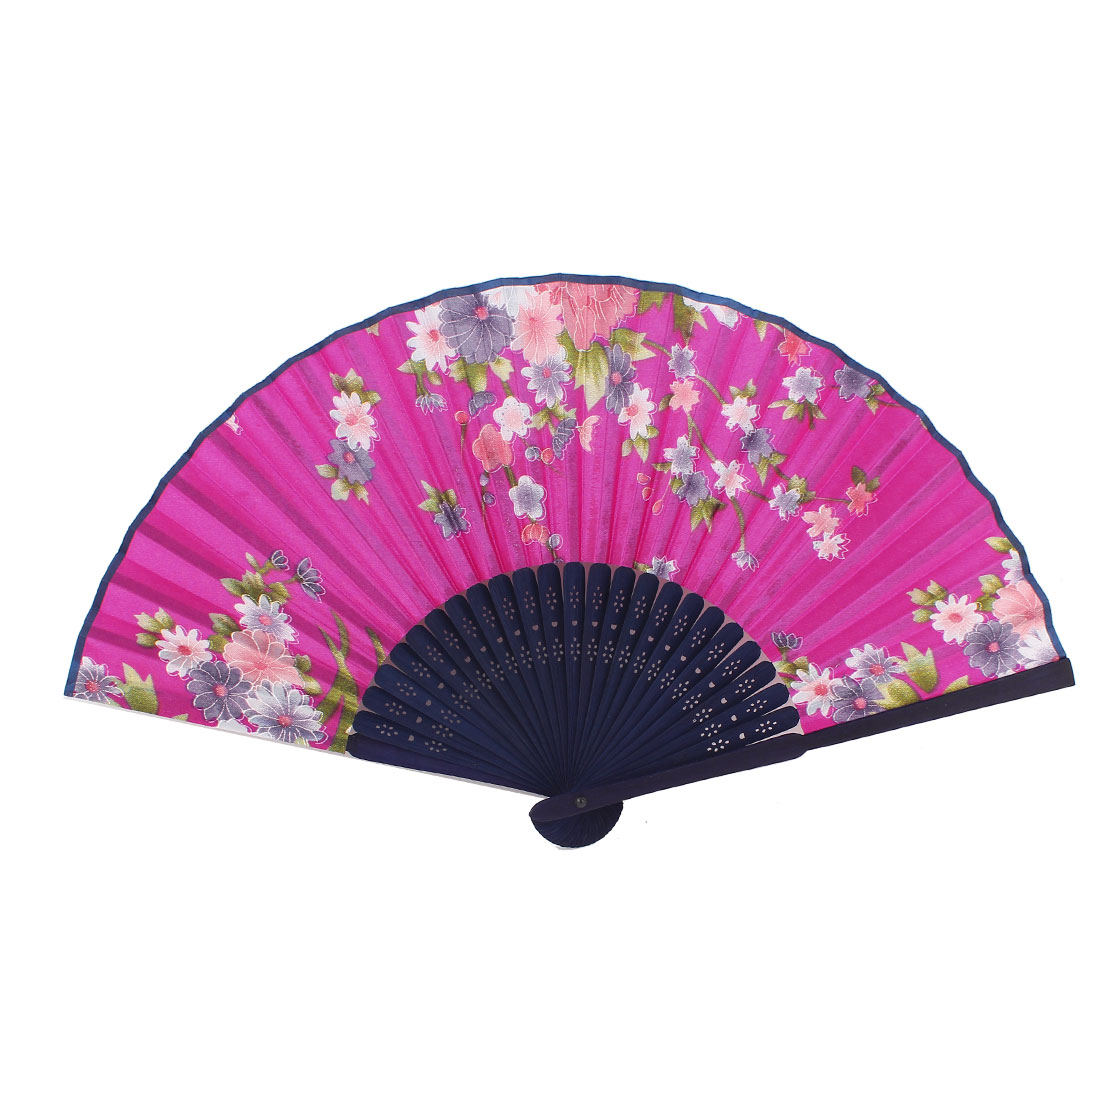 Bamboo Hollow Out Ribs Mini Flowers Pattern Portable Hand Fan Fushcia